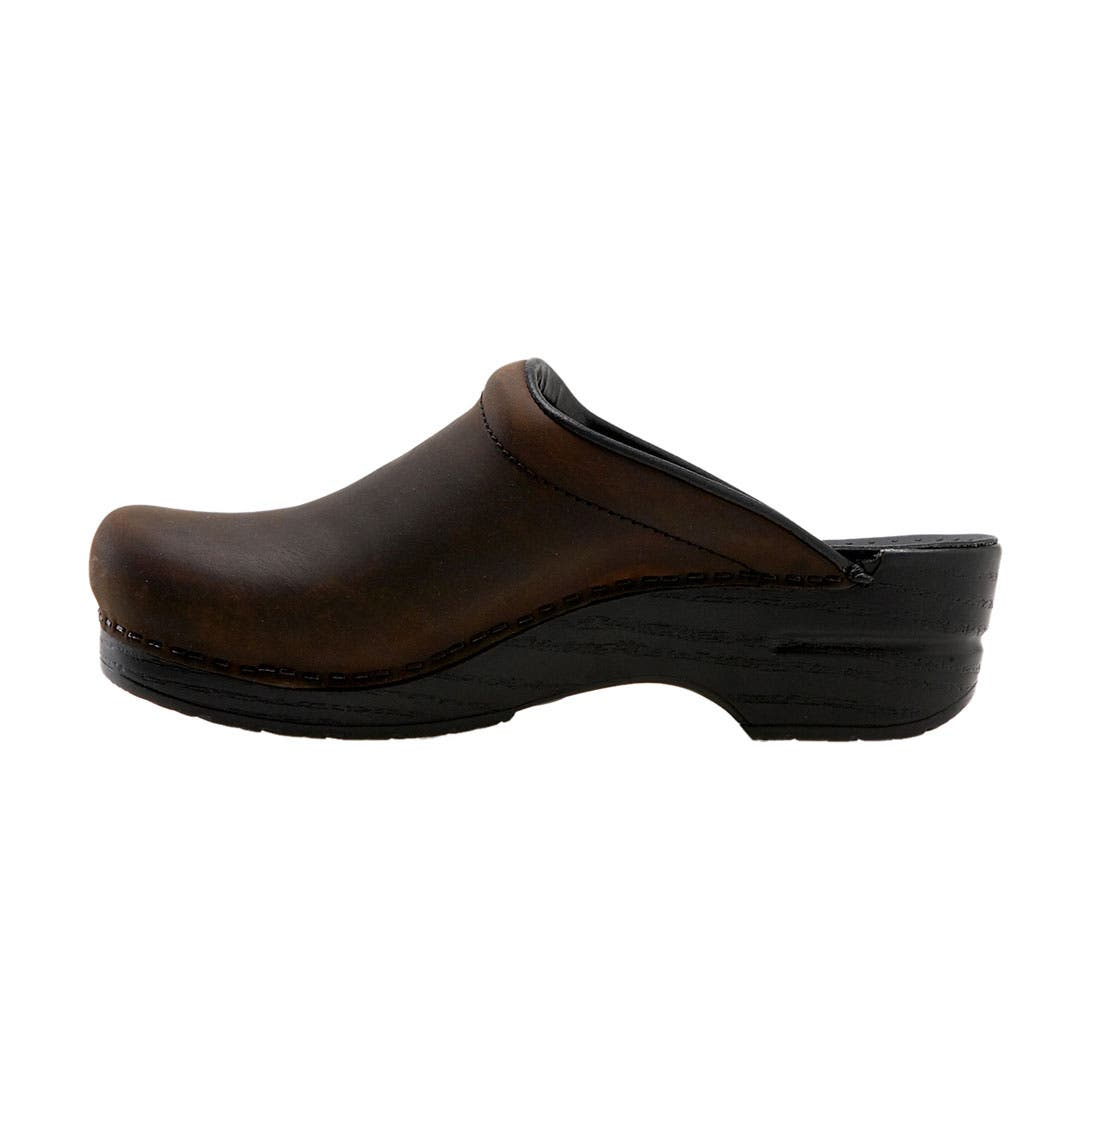 'Sonja' Oiled Leather Clog,                             Alternate thumbnail 2, color,                             Antique Brown Oiled